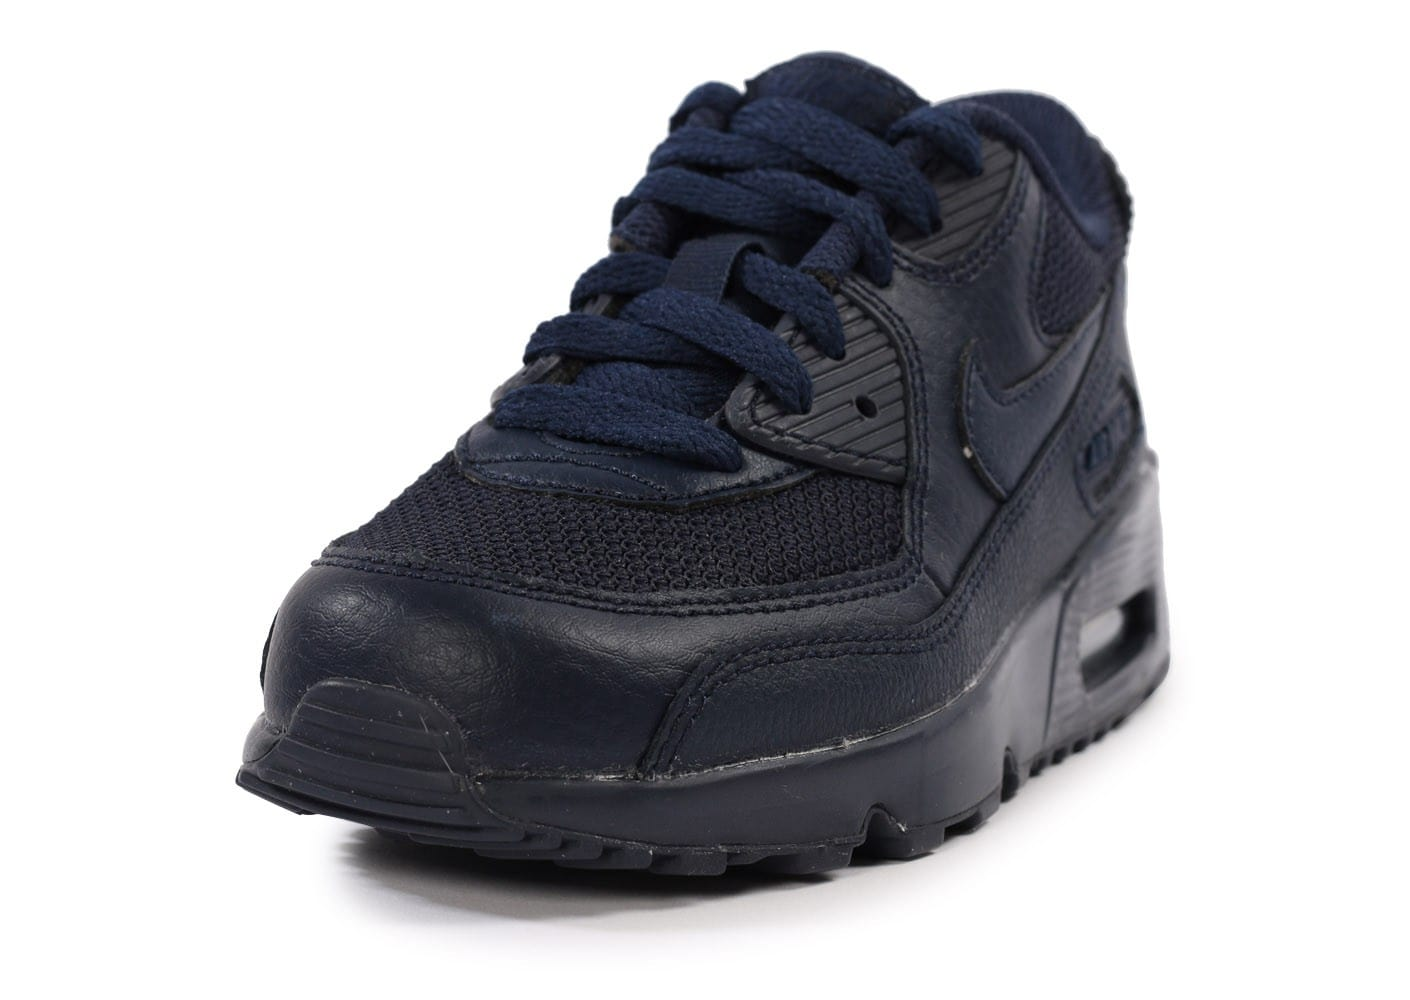 the latest 66d01 feb60 ... chaussures nike air max 90 mesh bleu marine enfant vue avant